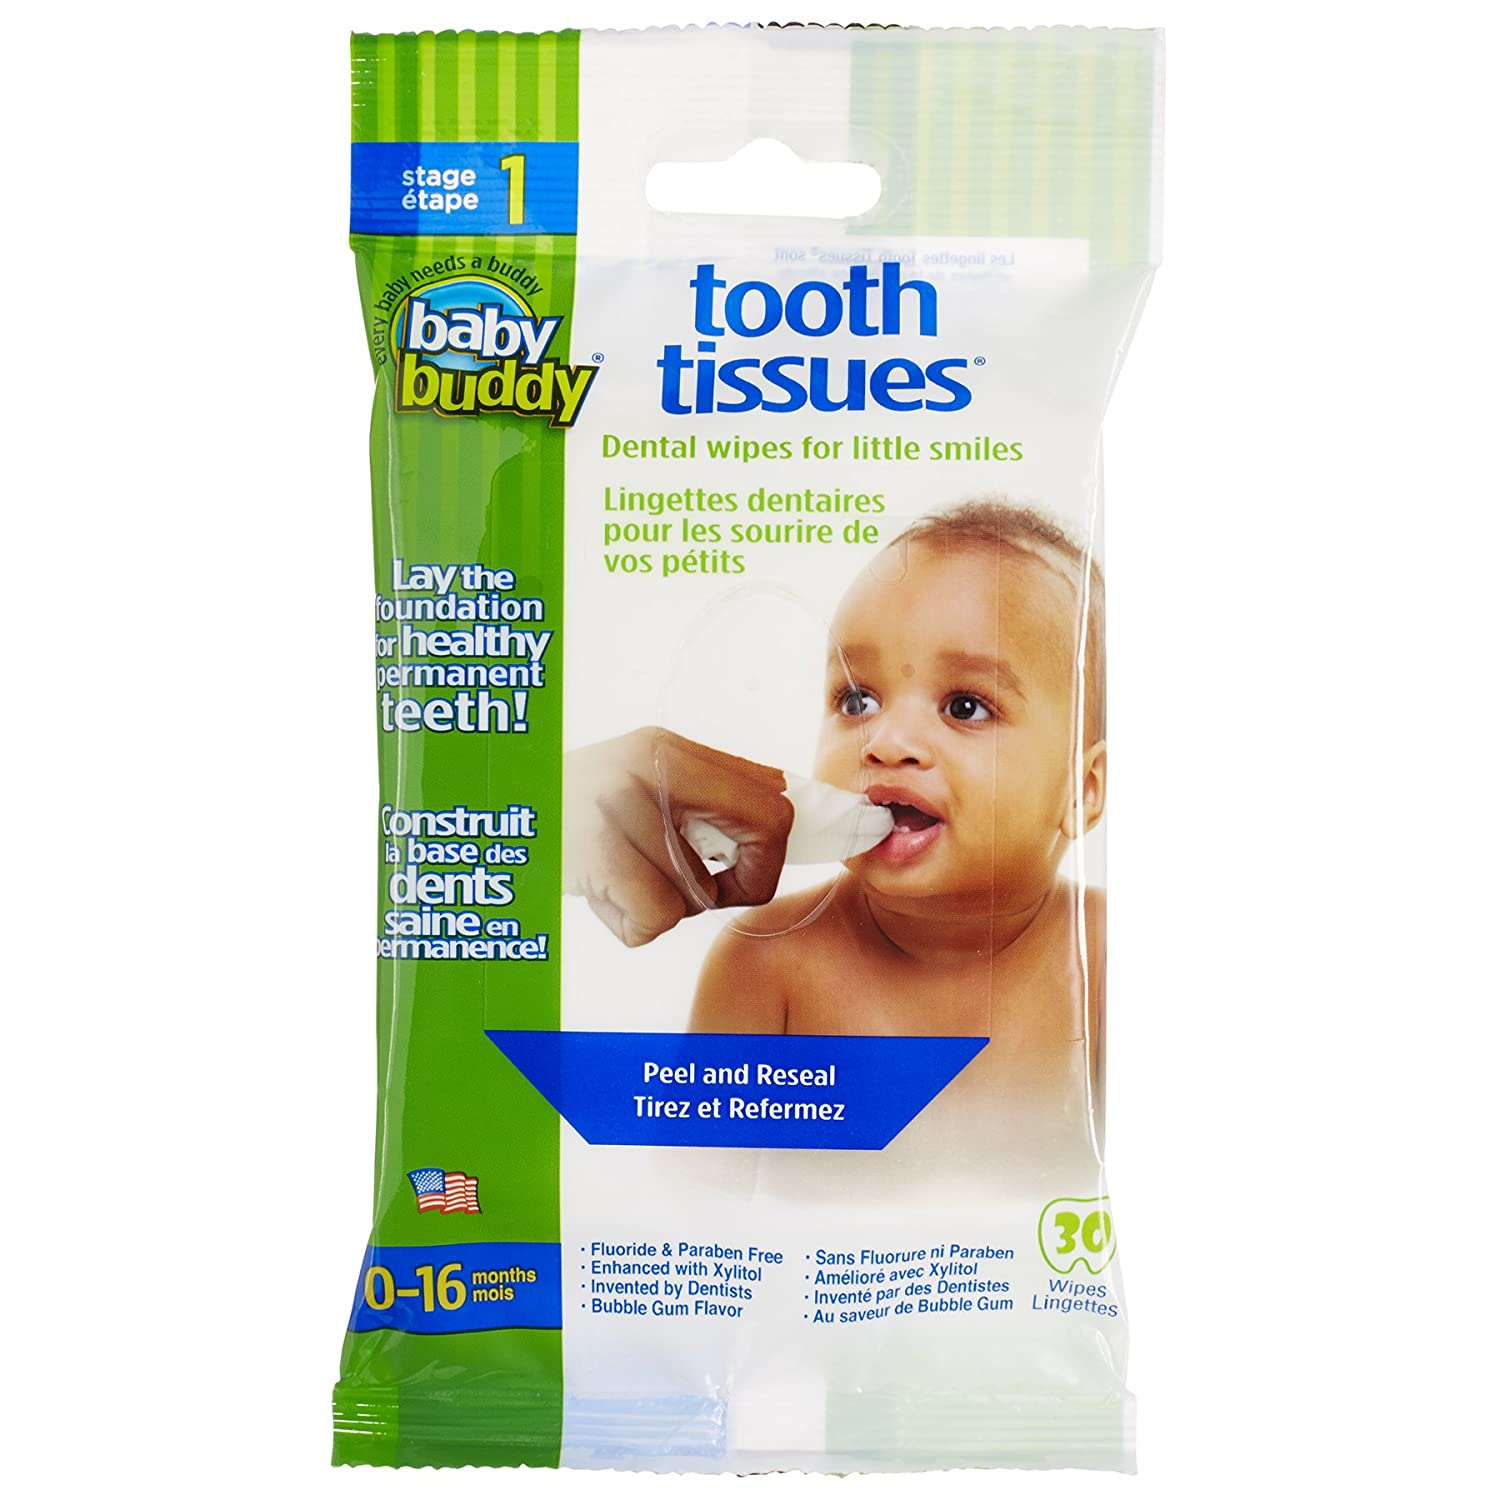 Baby Buddy Tooth Tissues Stage 1 for Baby/Toddler, Bubble Gum Flavor Kids Love, White, 30 Count 00580